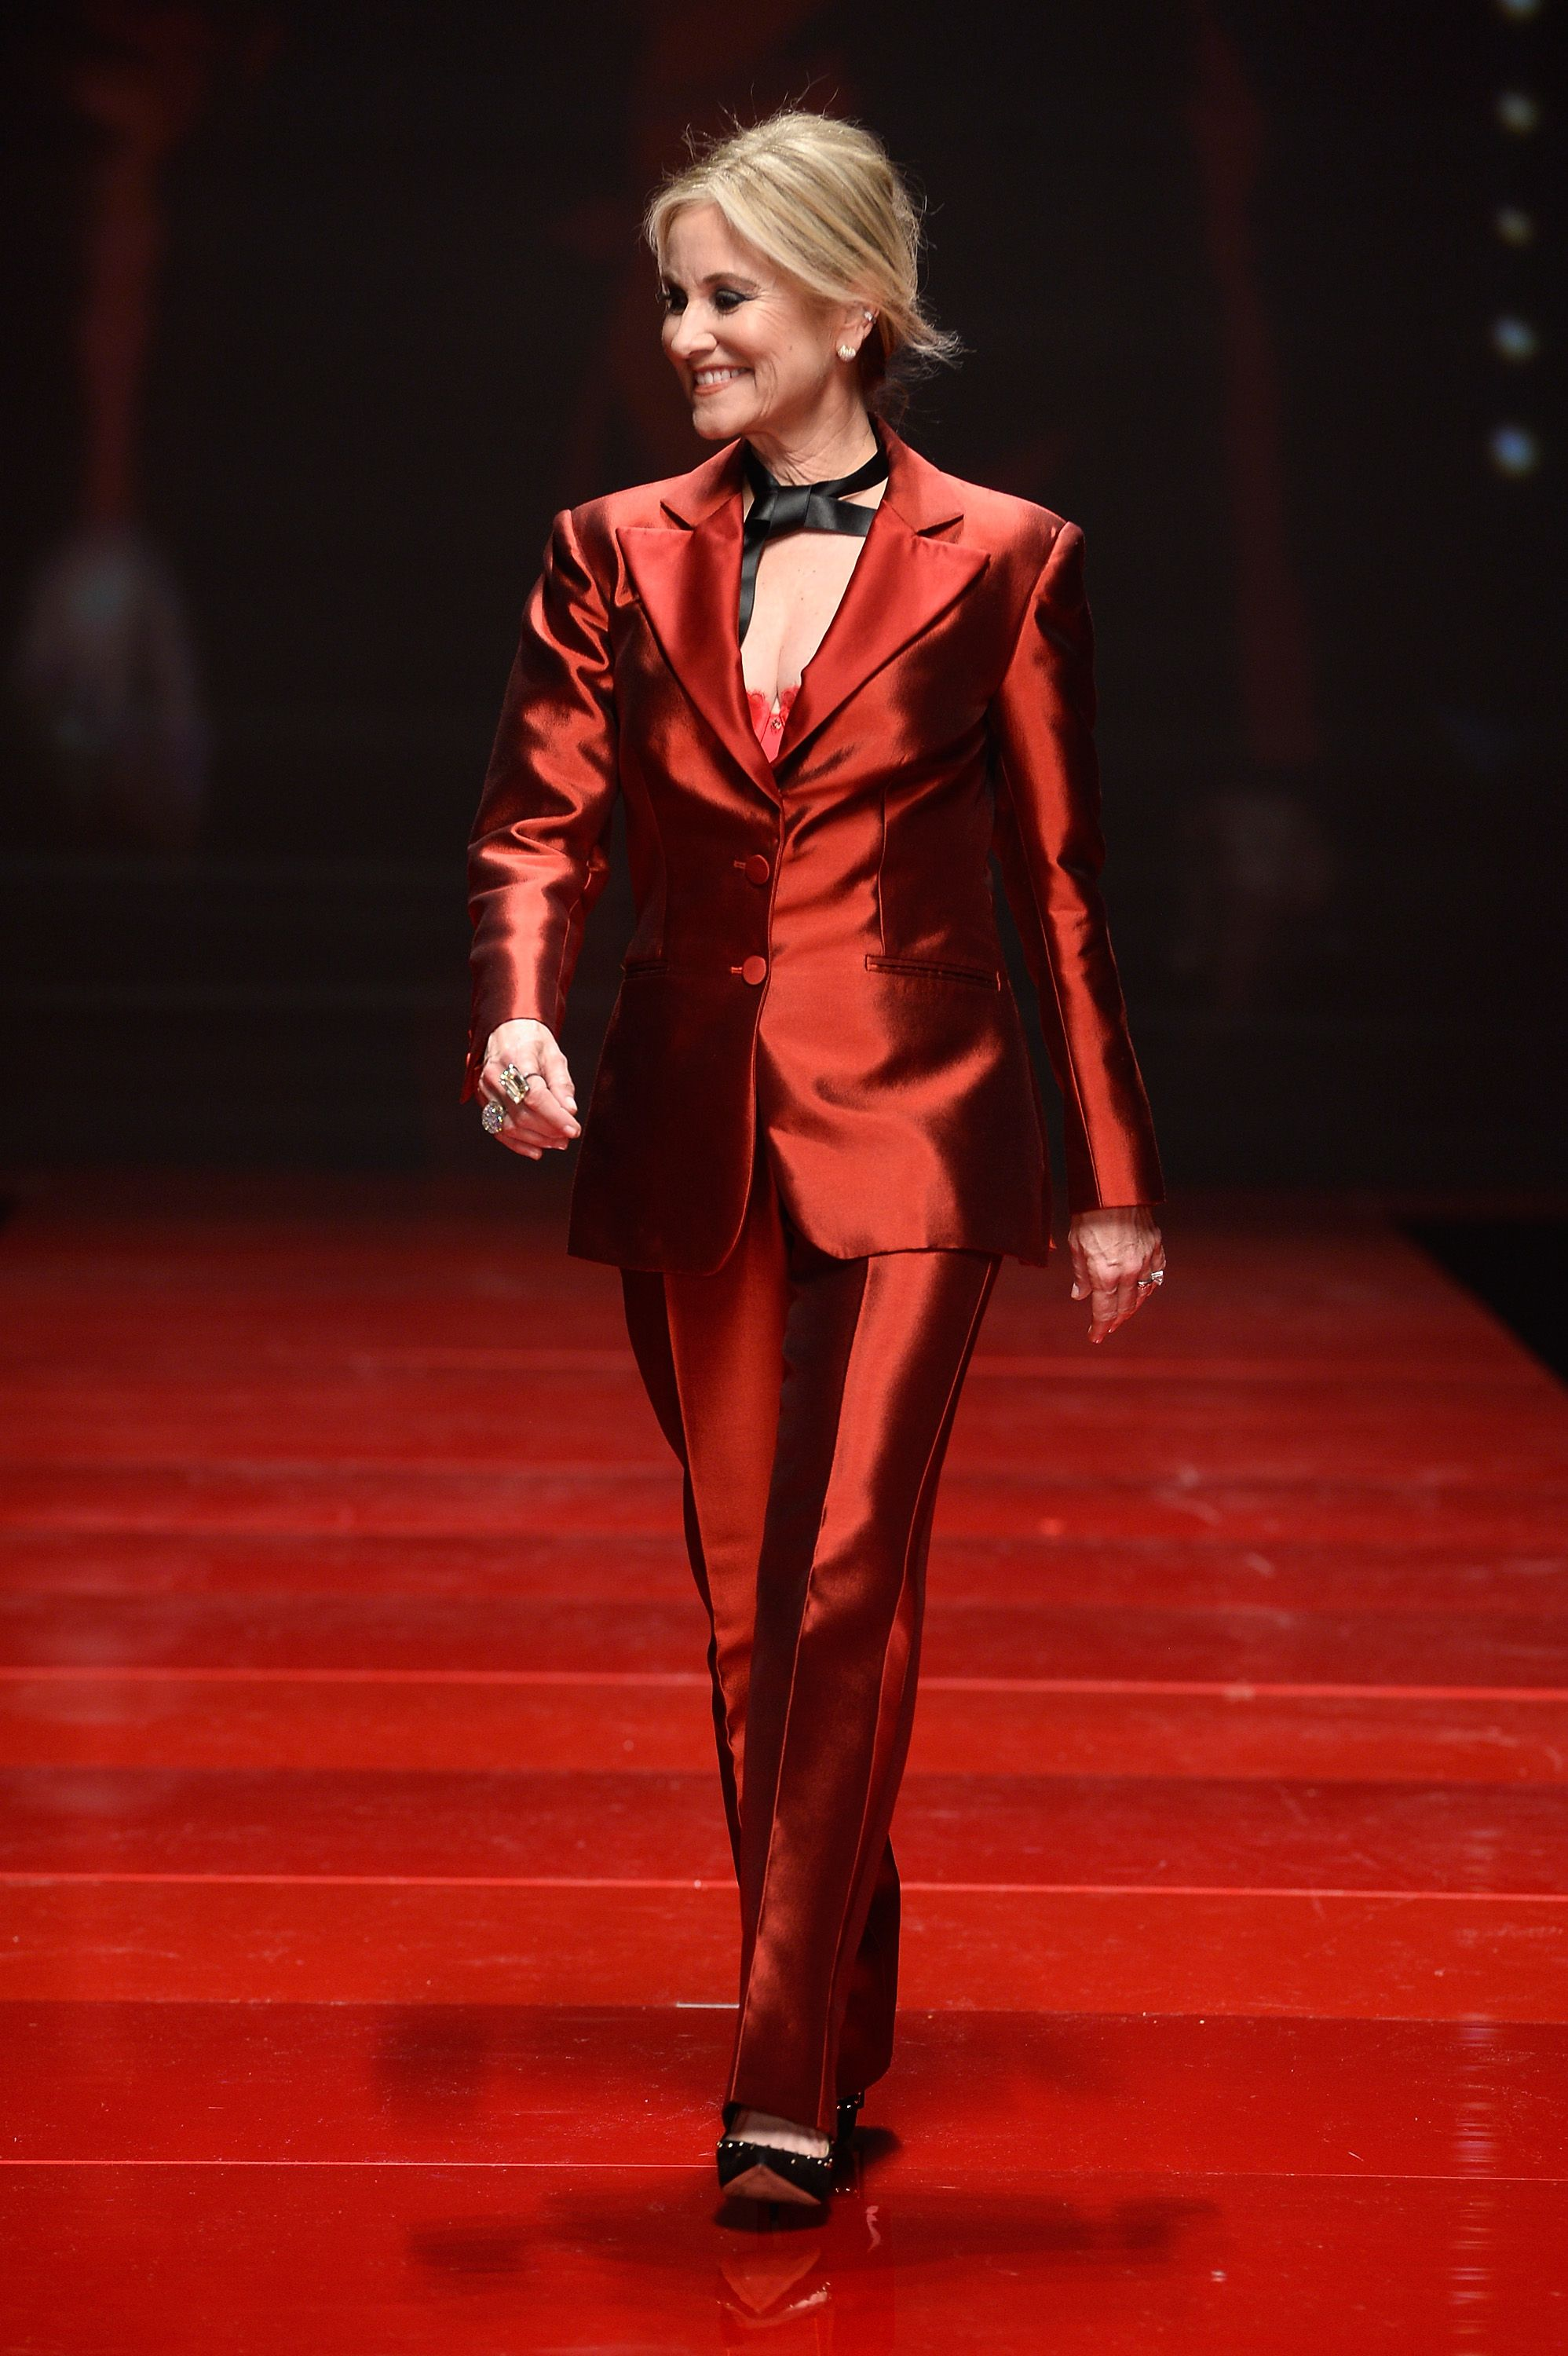 b4915712dda5 Maureen McCormick walks the runway at the American Heart Association's Go  Red For Women Red Dress Collection 2017 presented by Macy's at Fashion Week  in New ...